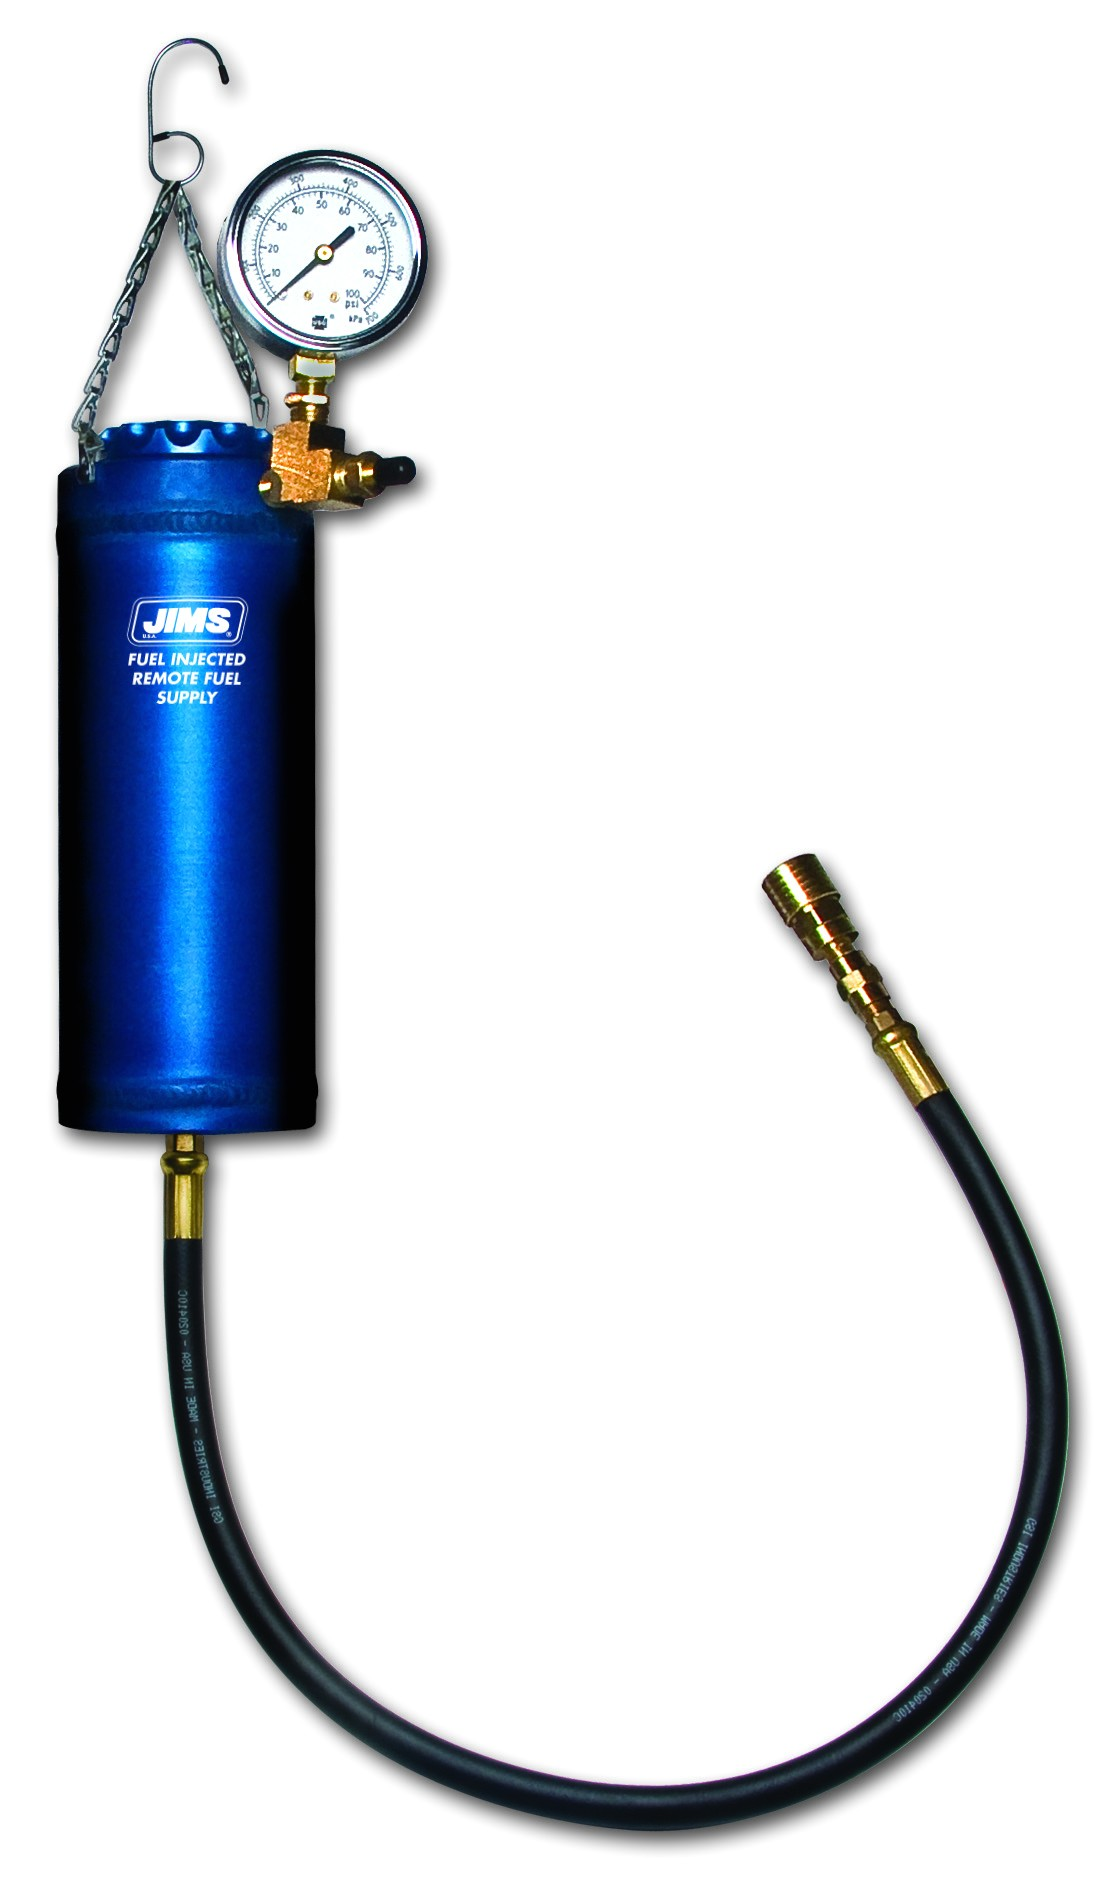 remote fuel supply for fuel injected motorcycles